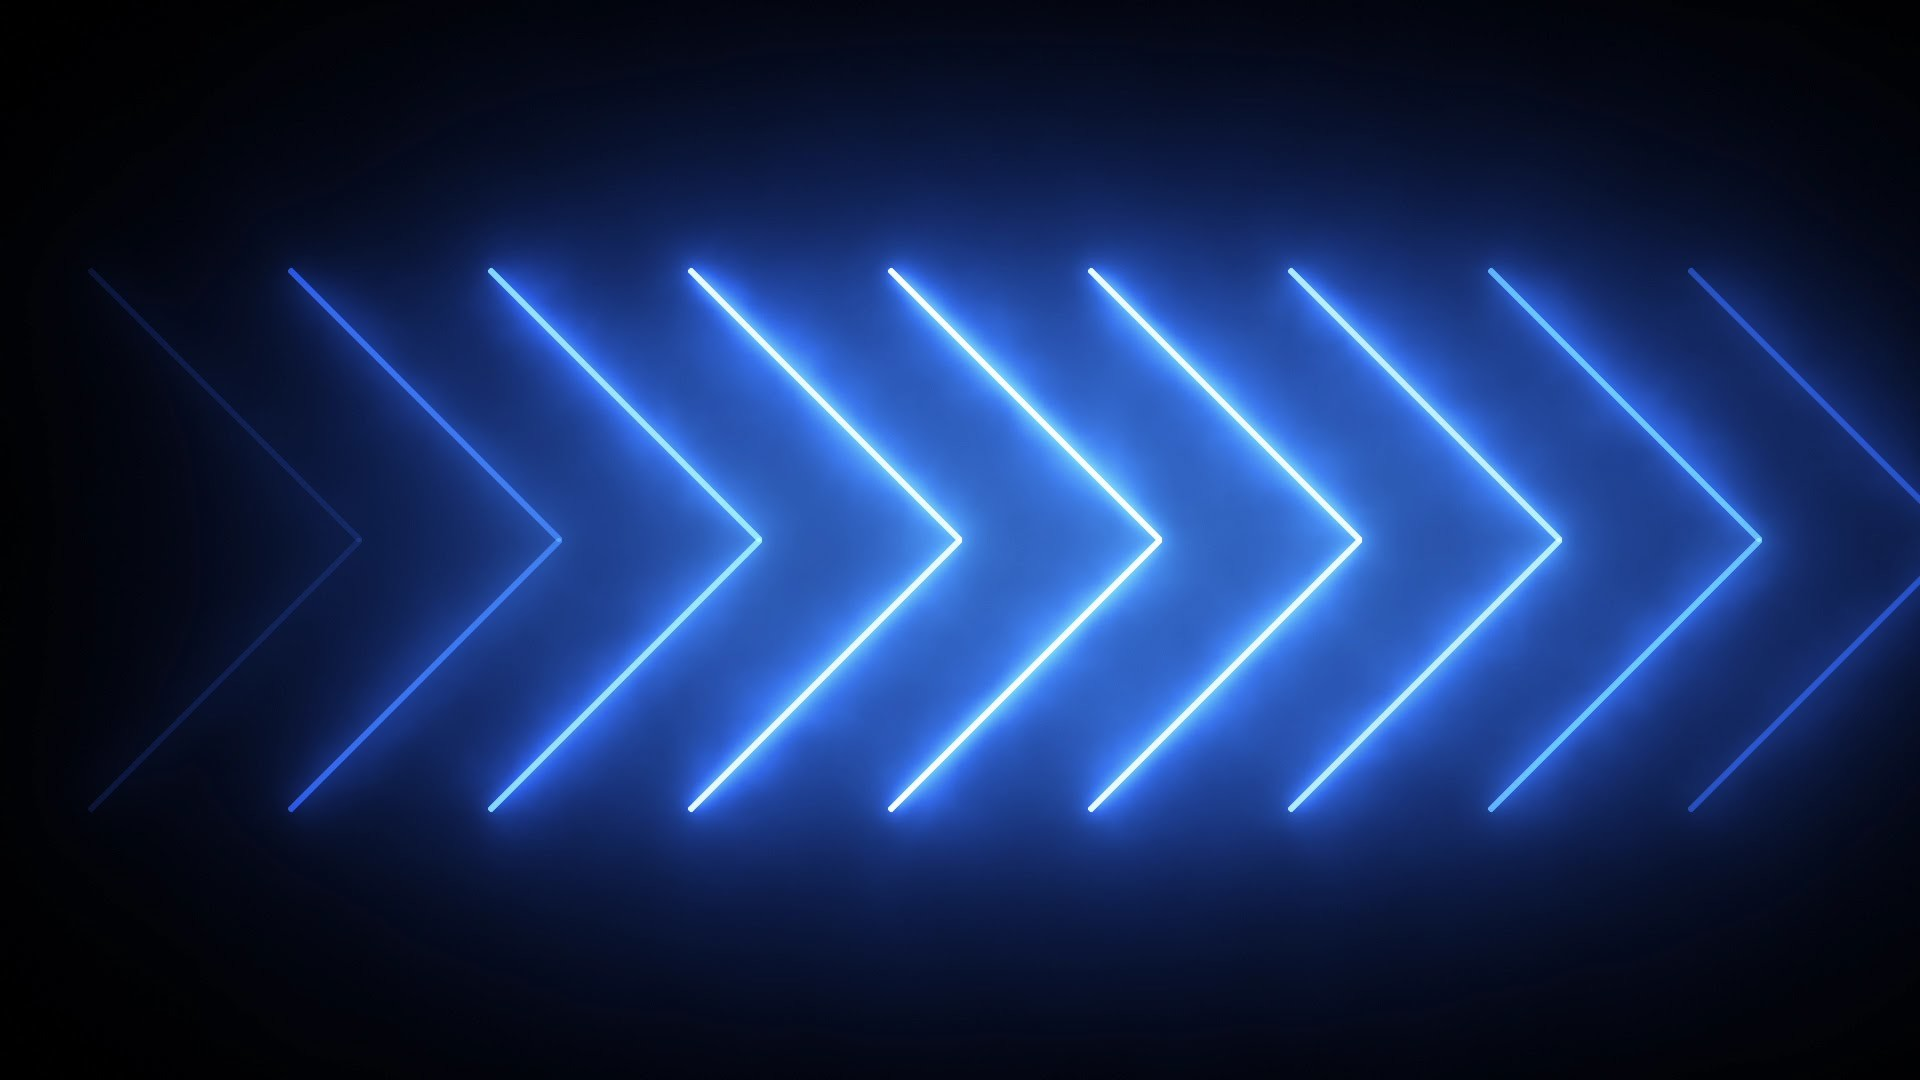 Backgrounds Blue Neon Cool